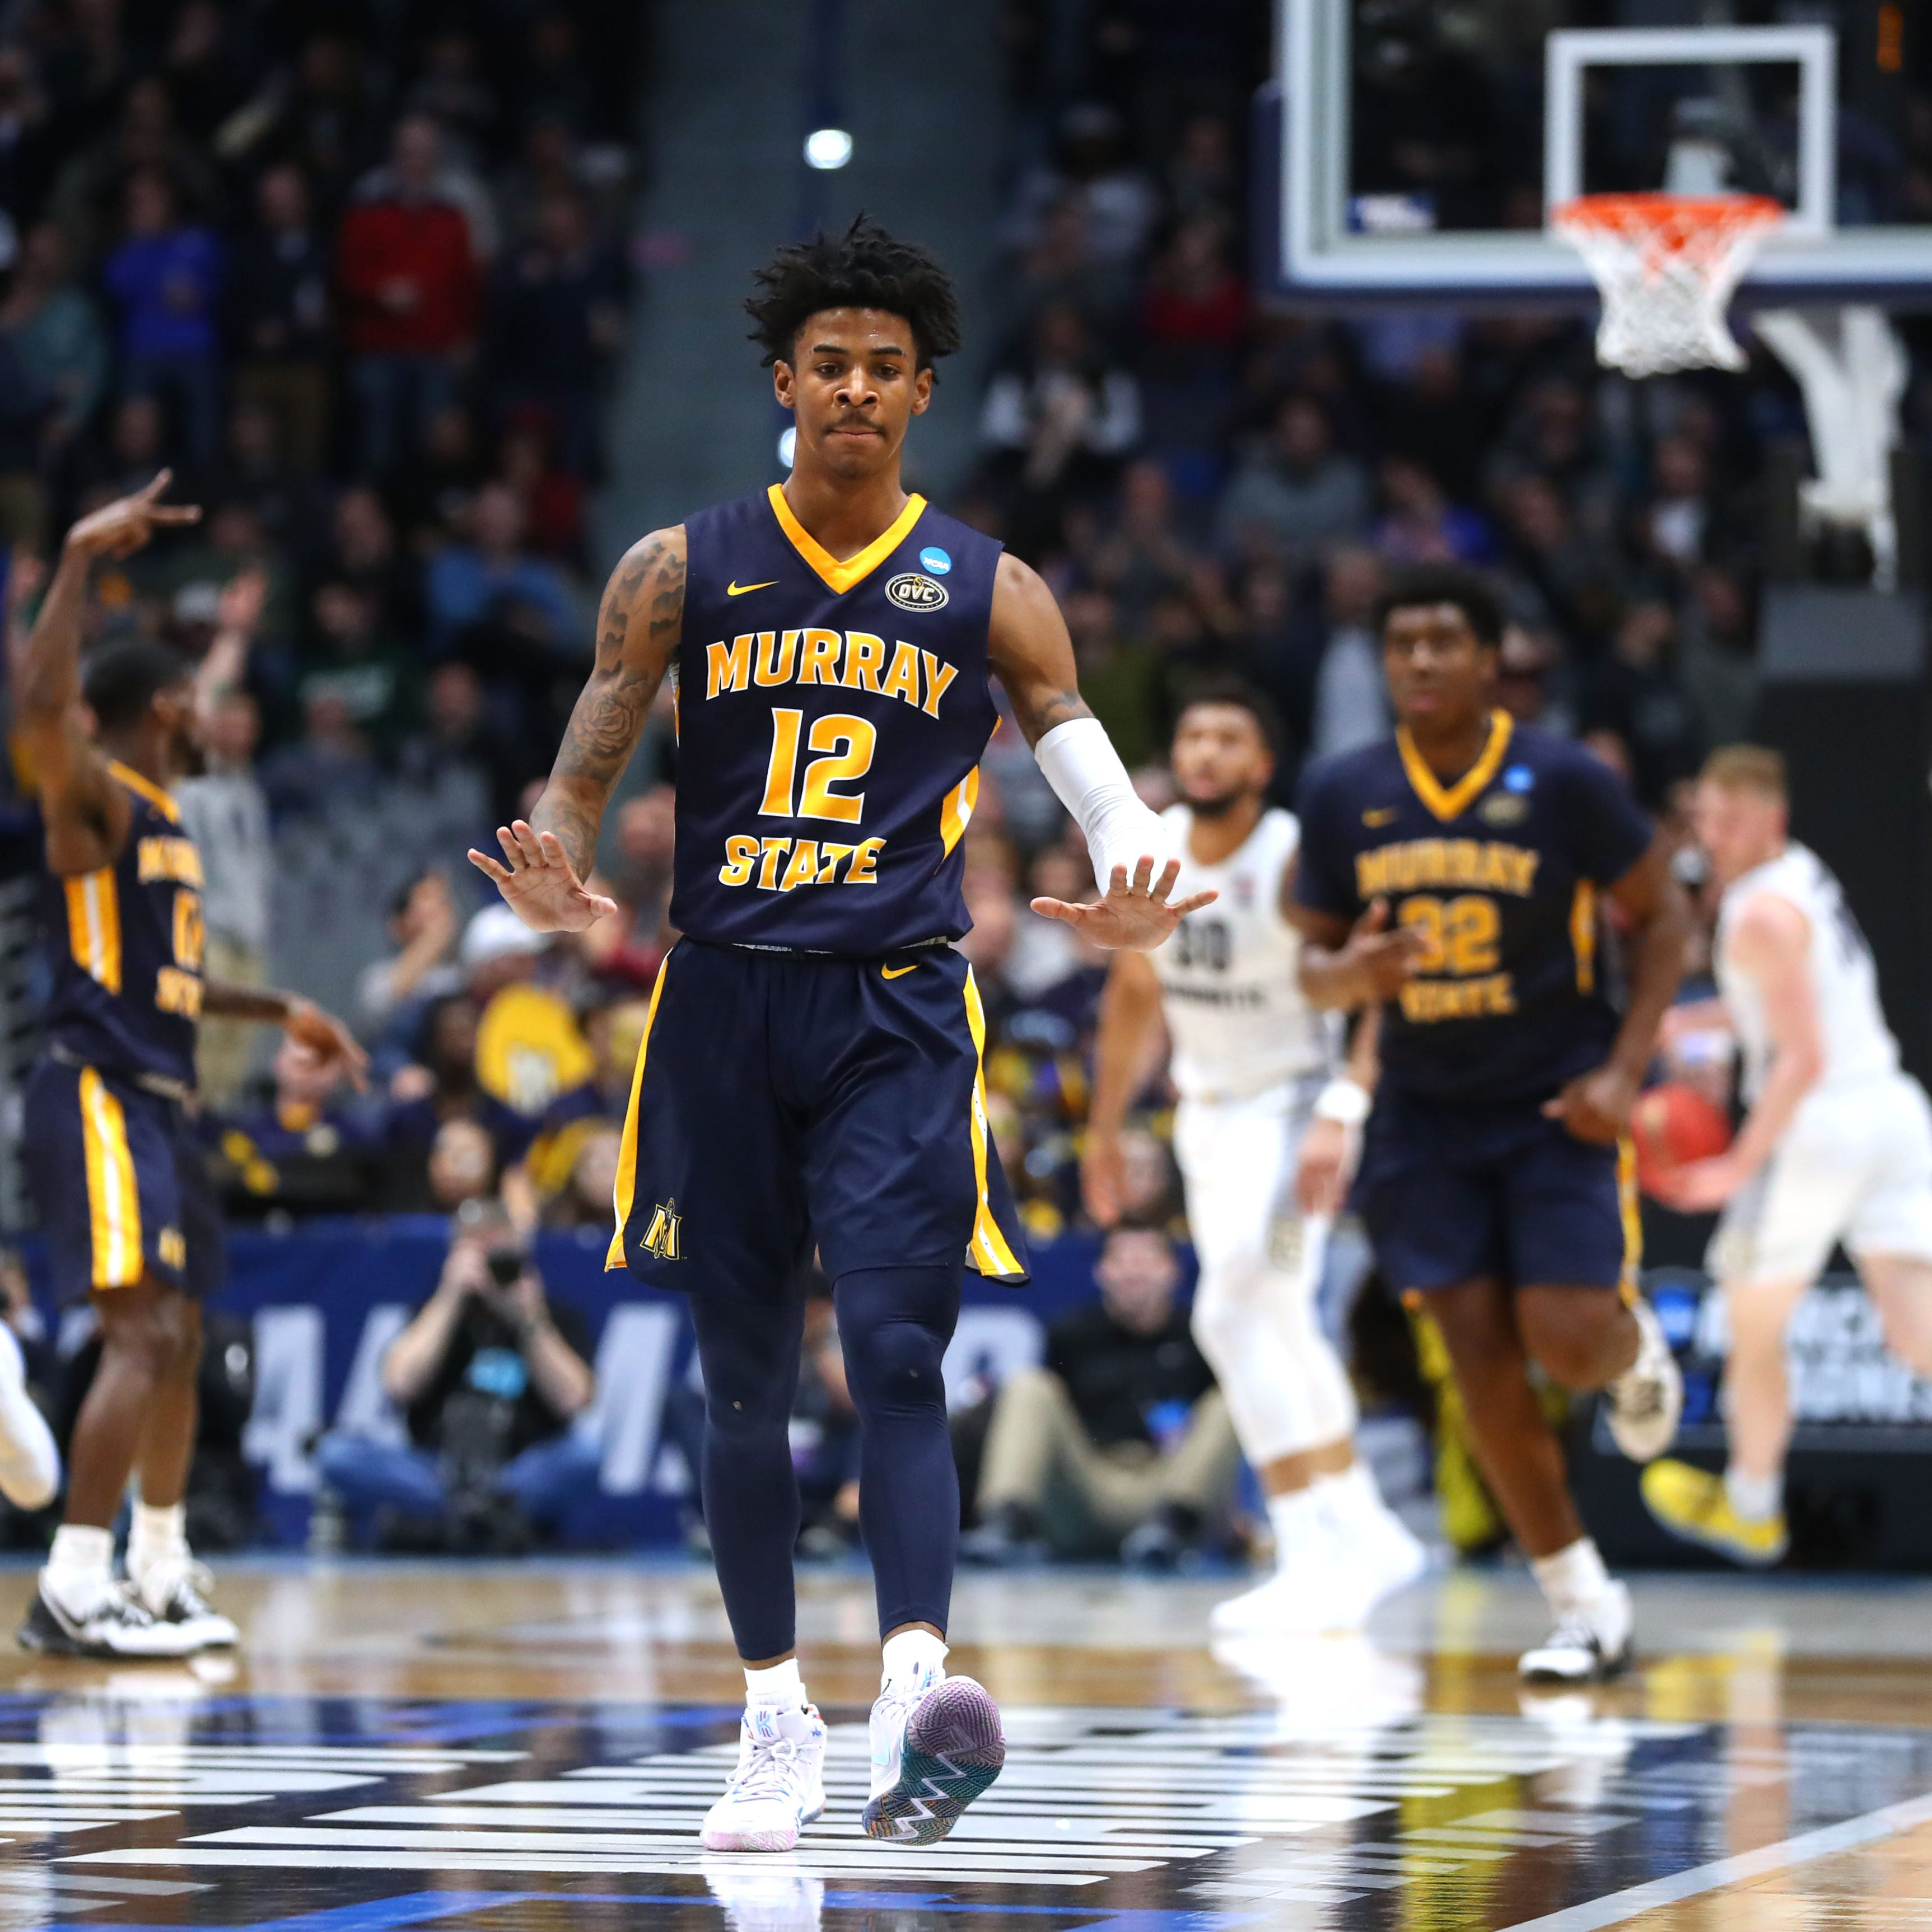 Murray State 83, Marquette 64: The Golden Eagles fell flat in their NCAA Tournament opener